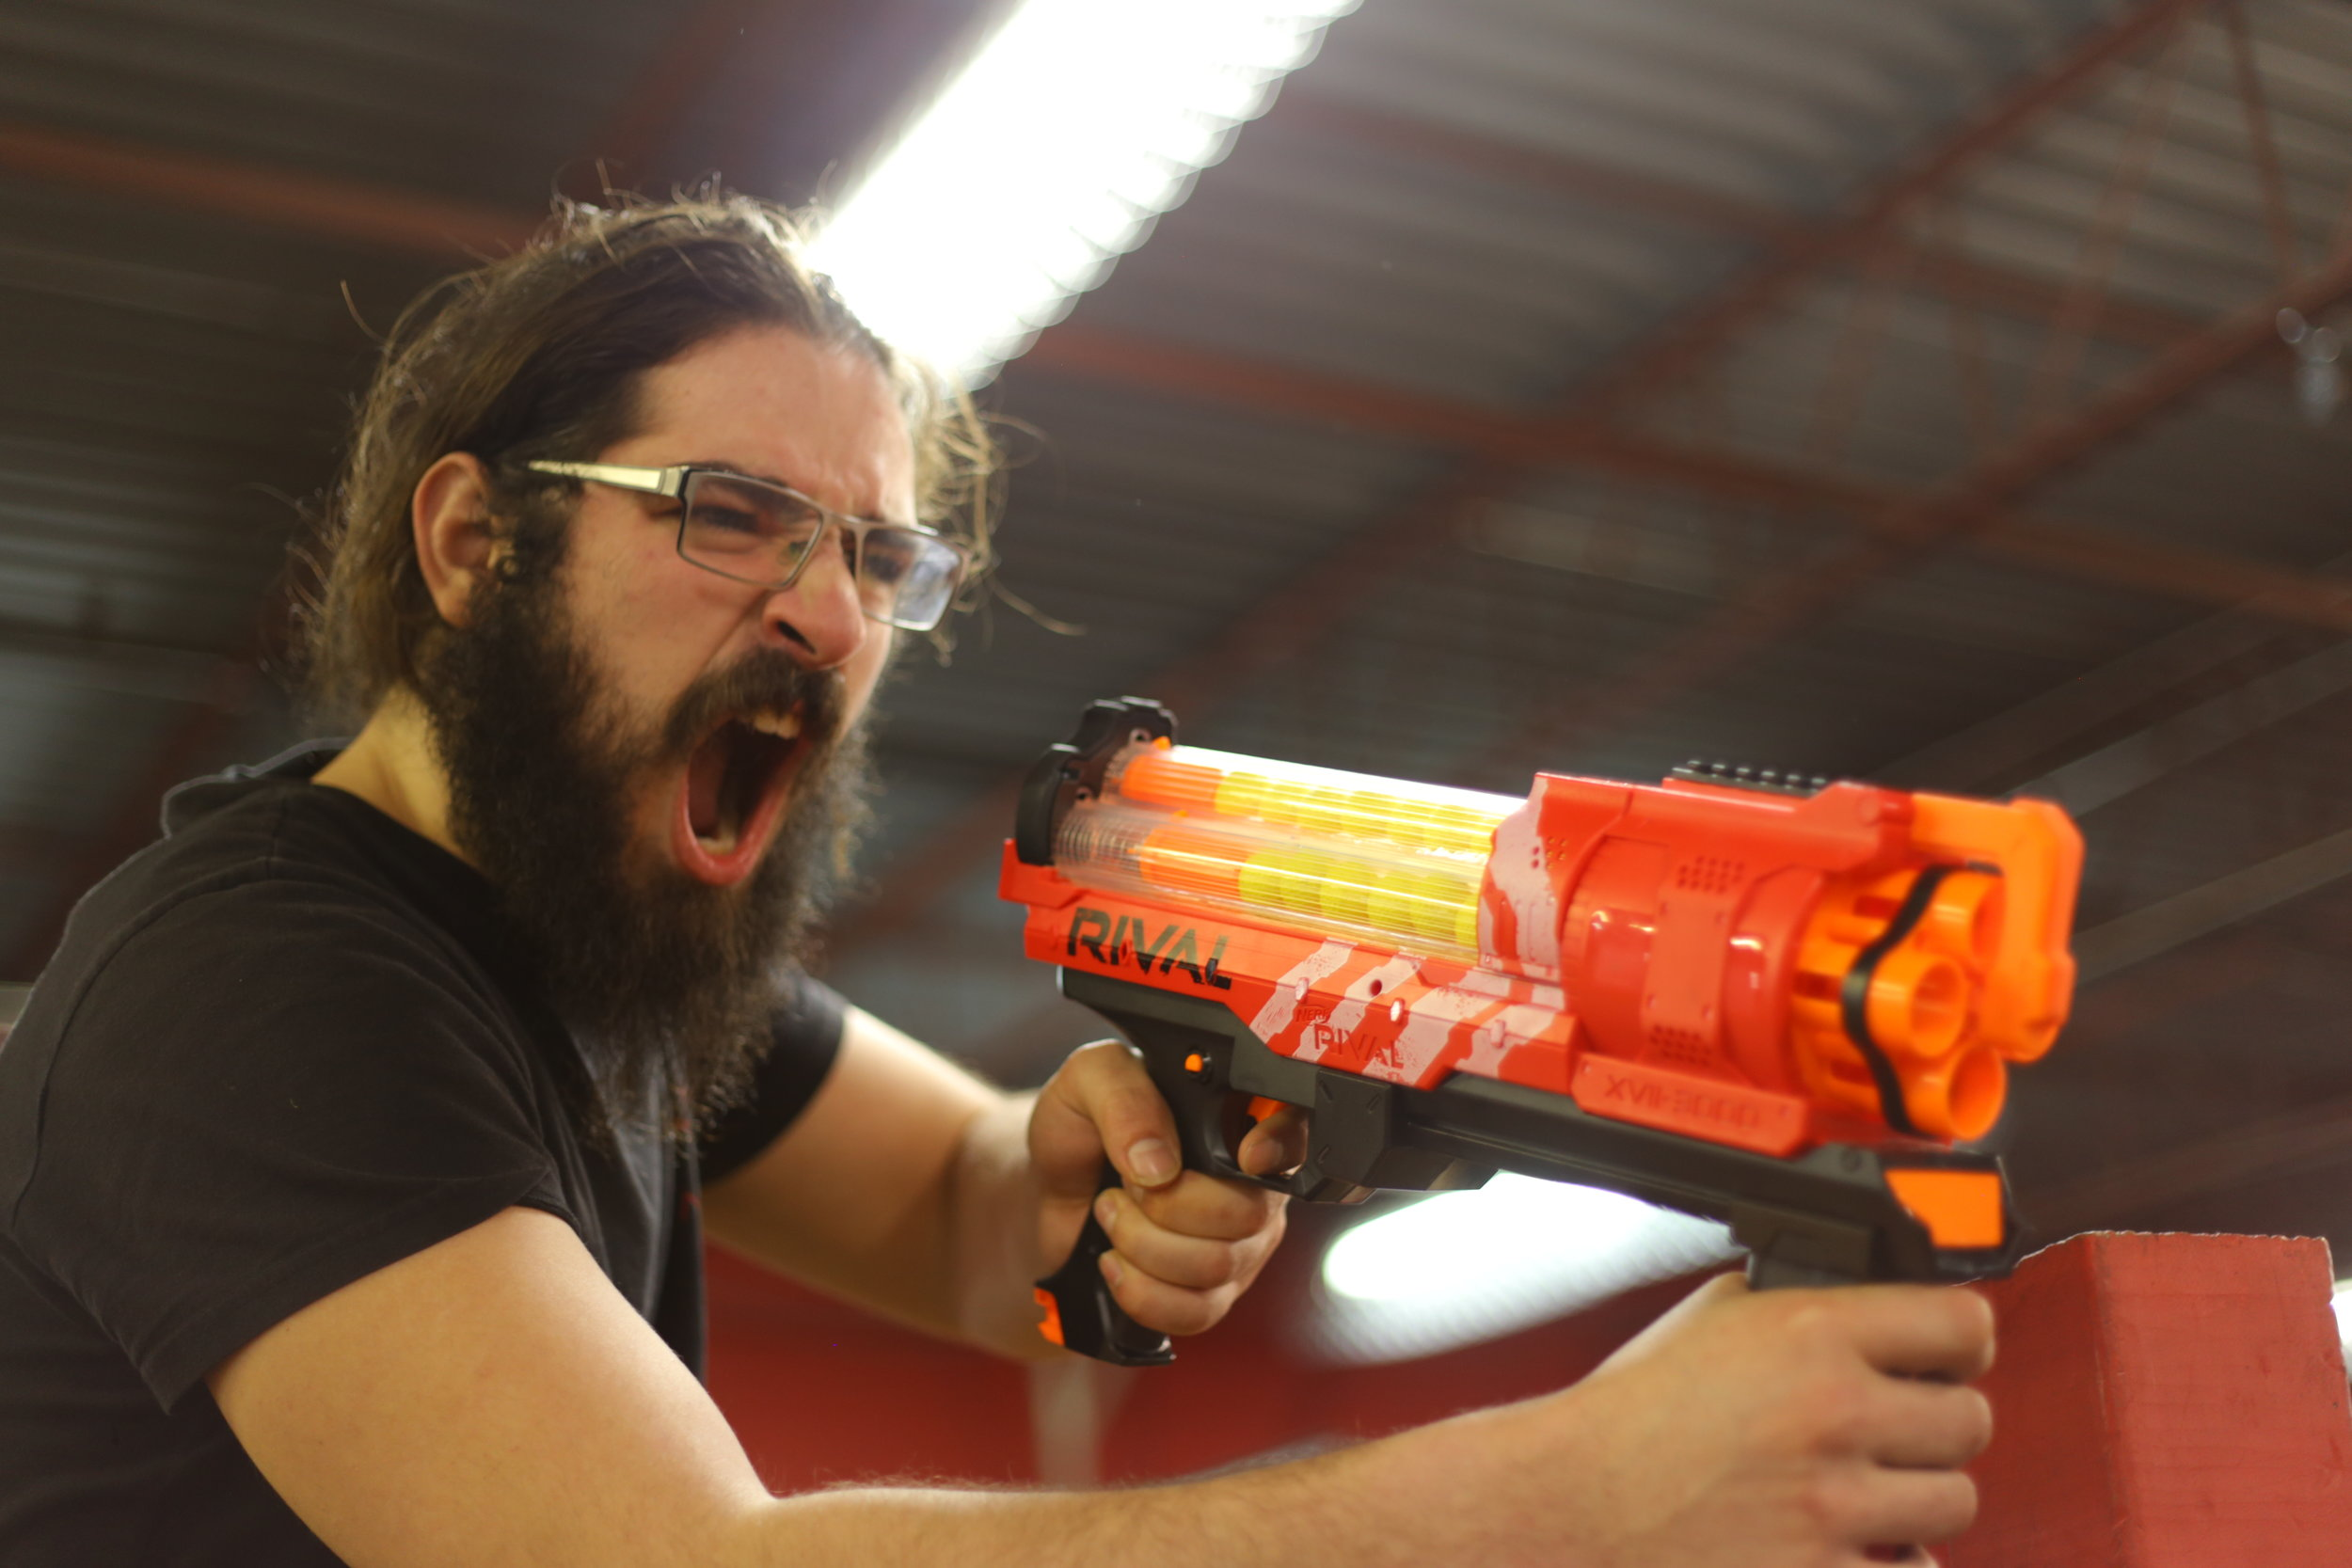 toronto nerf wars red Rival archers arena nerf combat battle.JPG